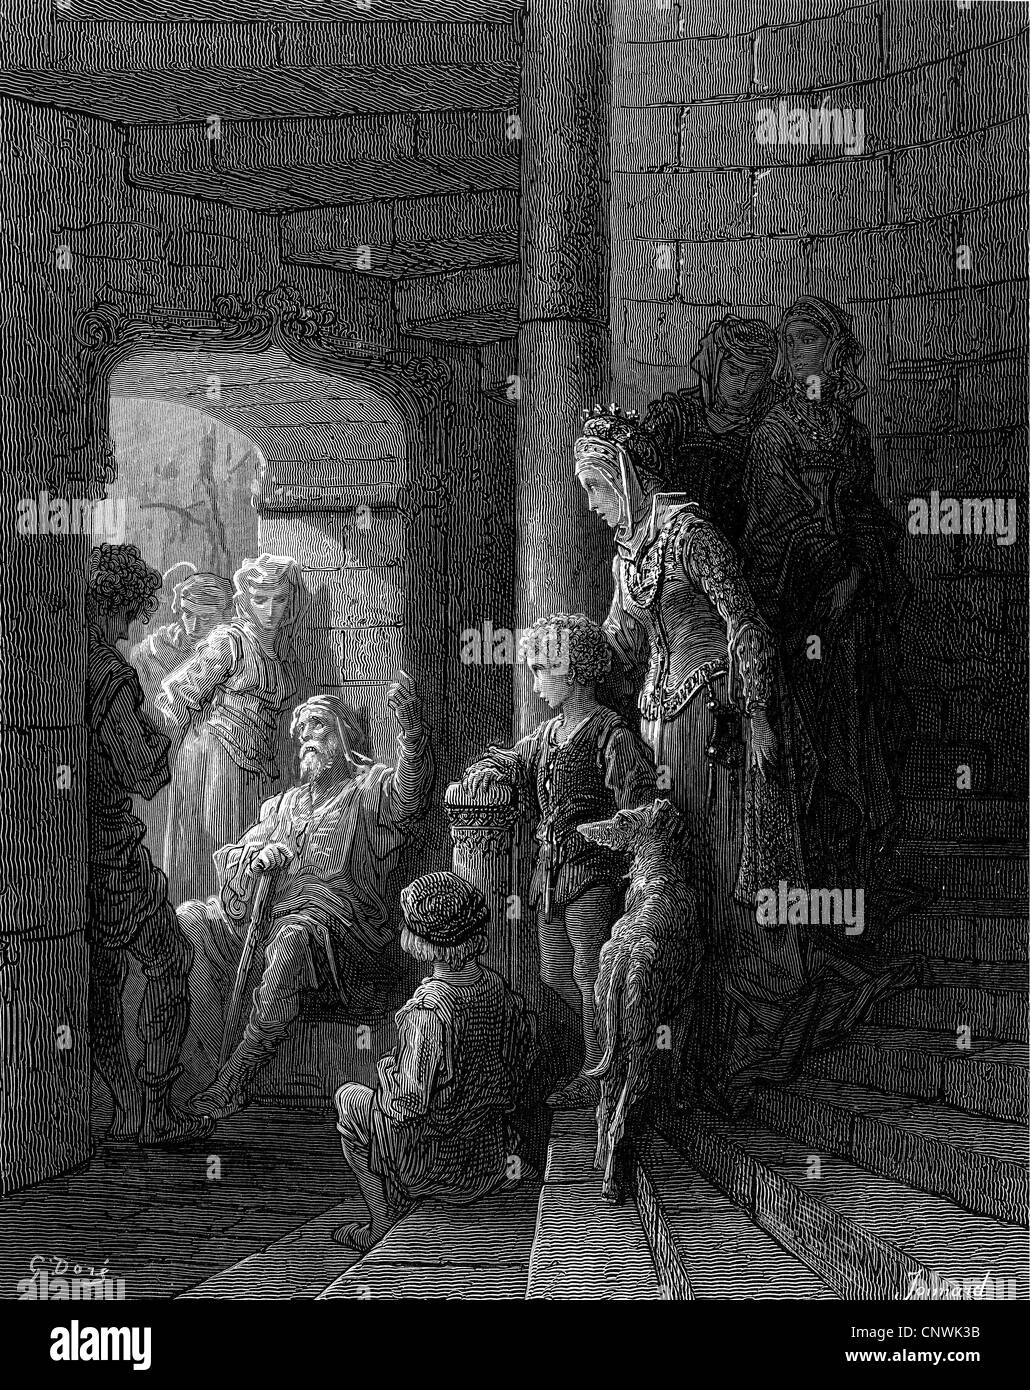 Middle Ages, crusades, a veteran from the Holy Land, wood engraving by Jonnard after drawing by Gustav Dore, to: - Stock Image